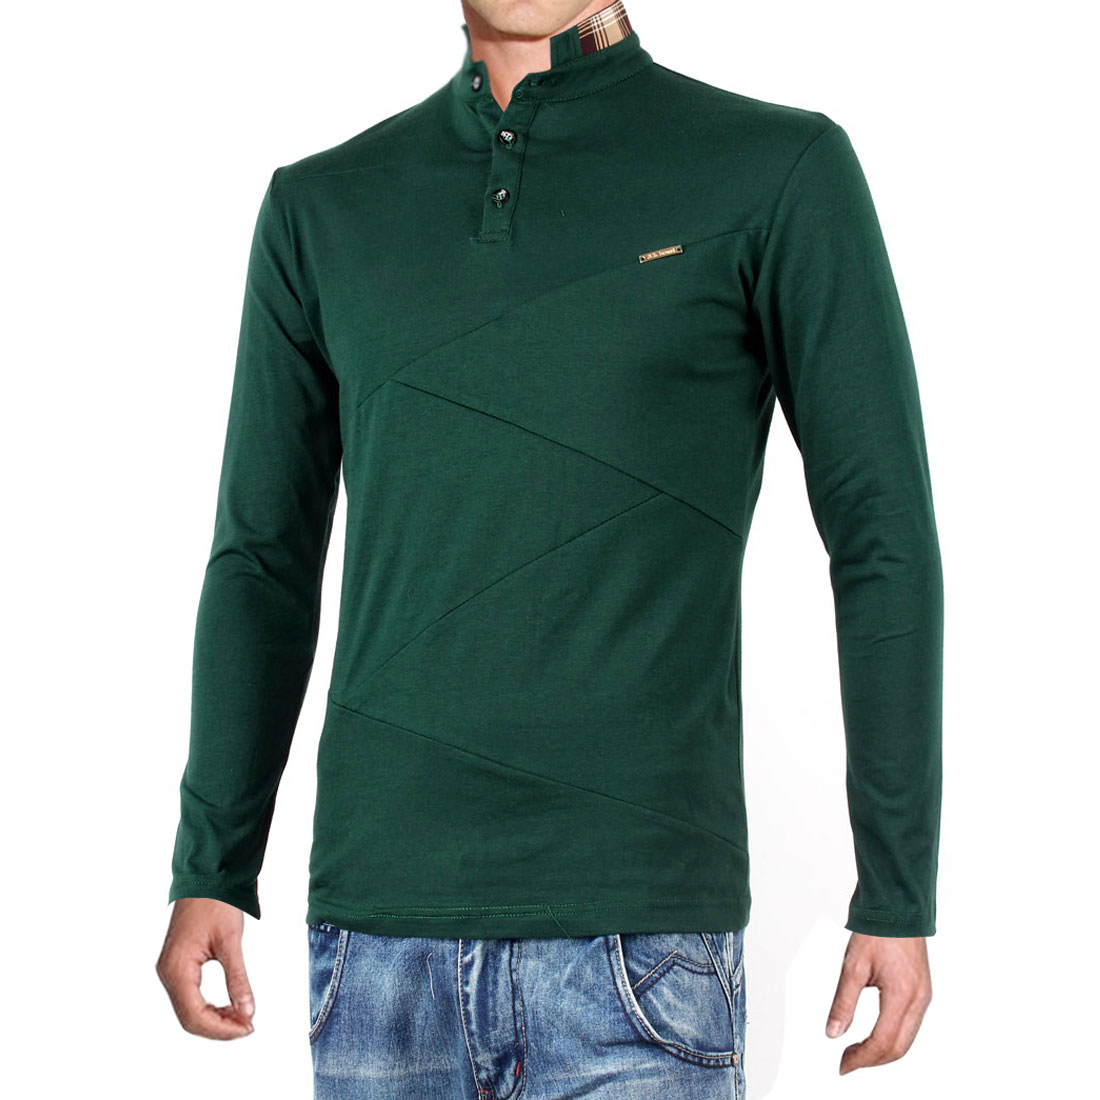 Mens Dark Green Stand Color Button Closure Upper Pullover Shirt M